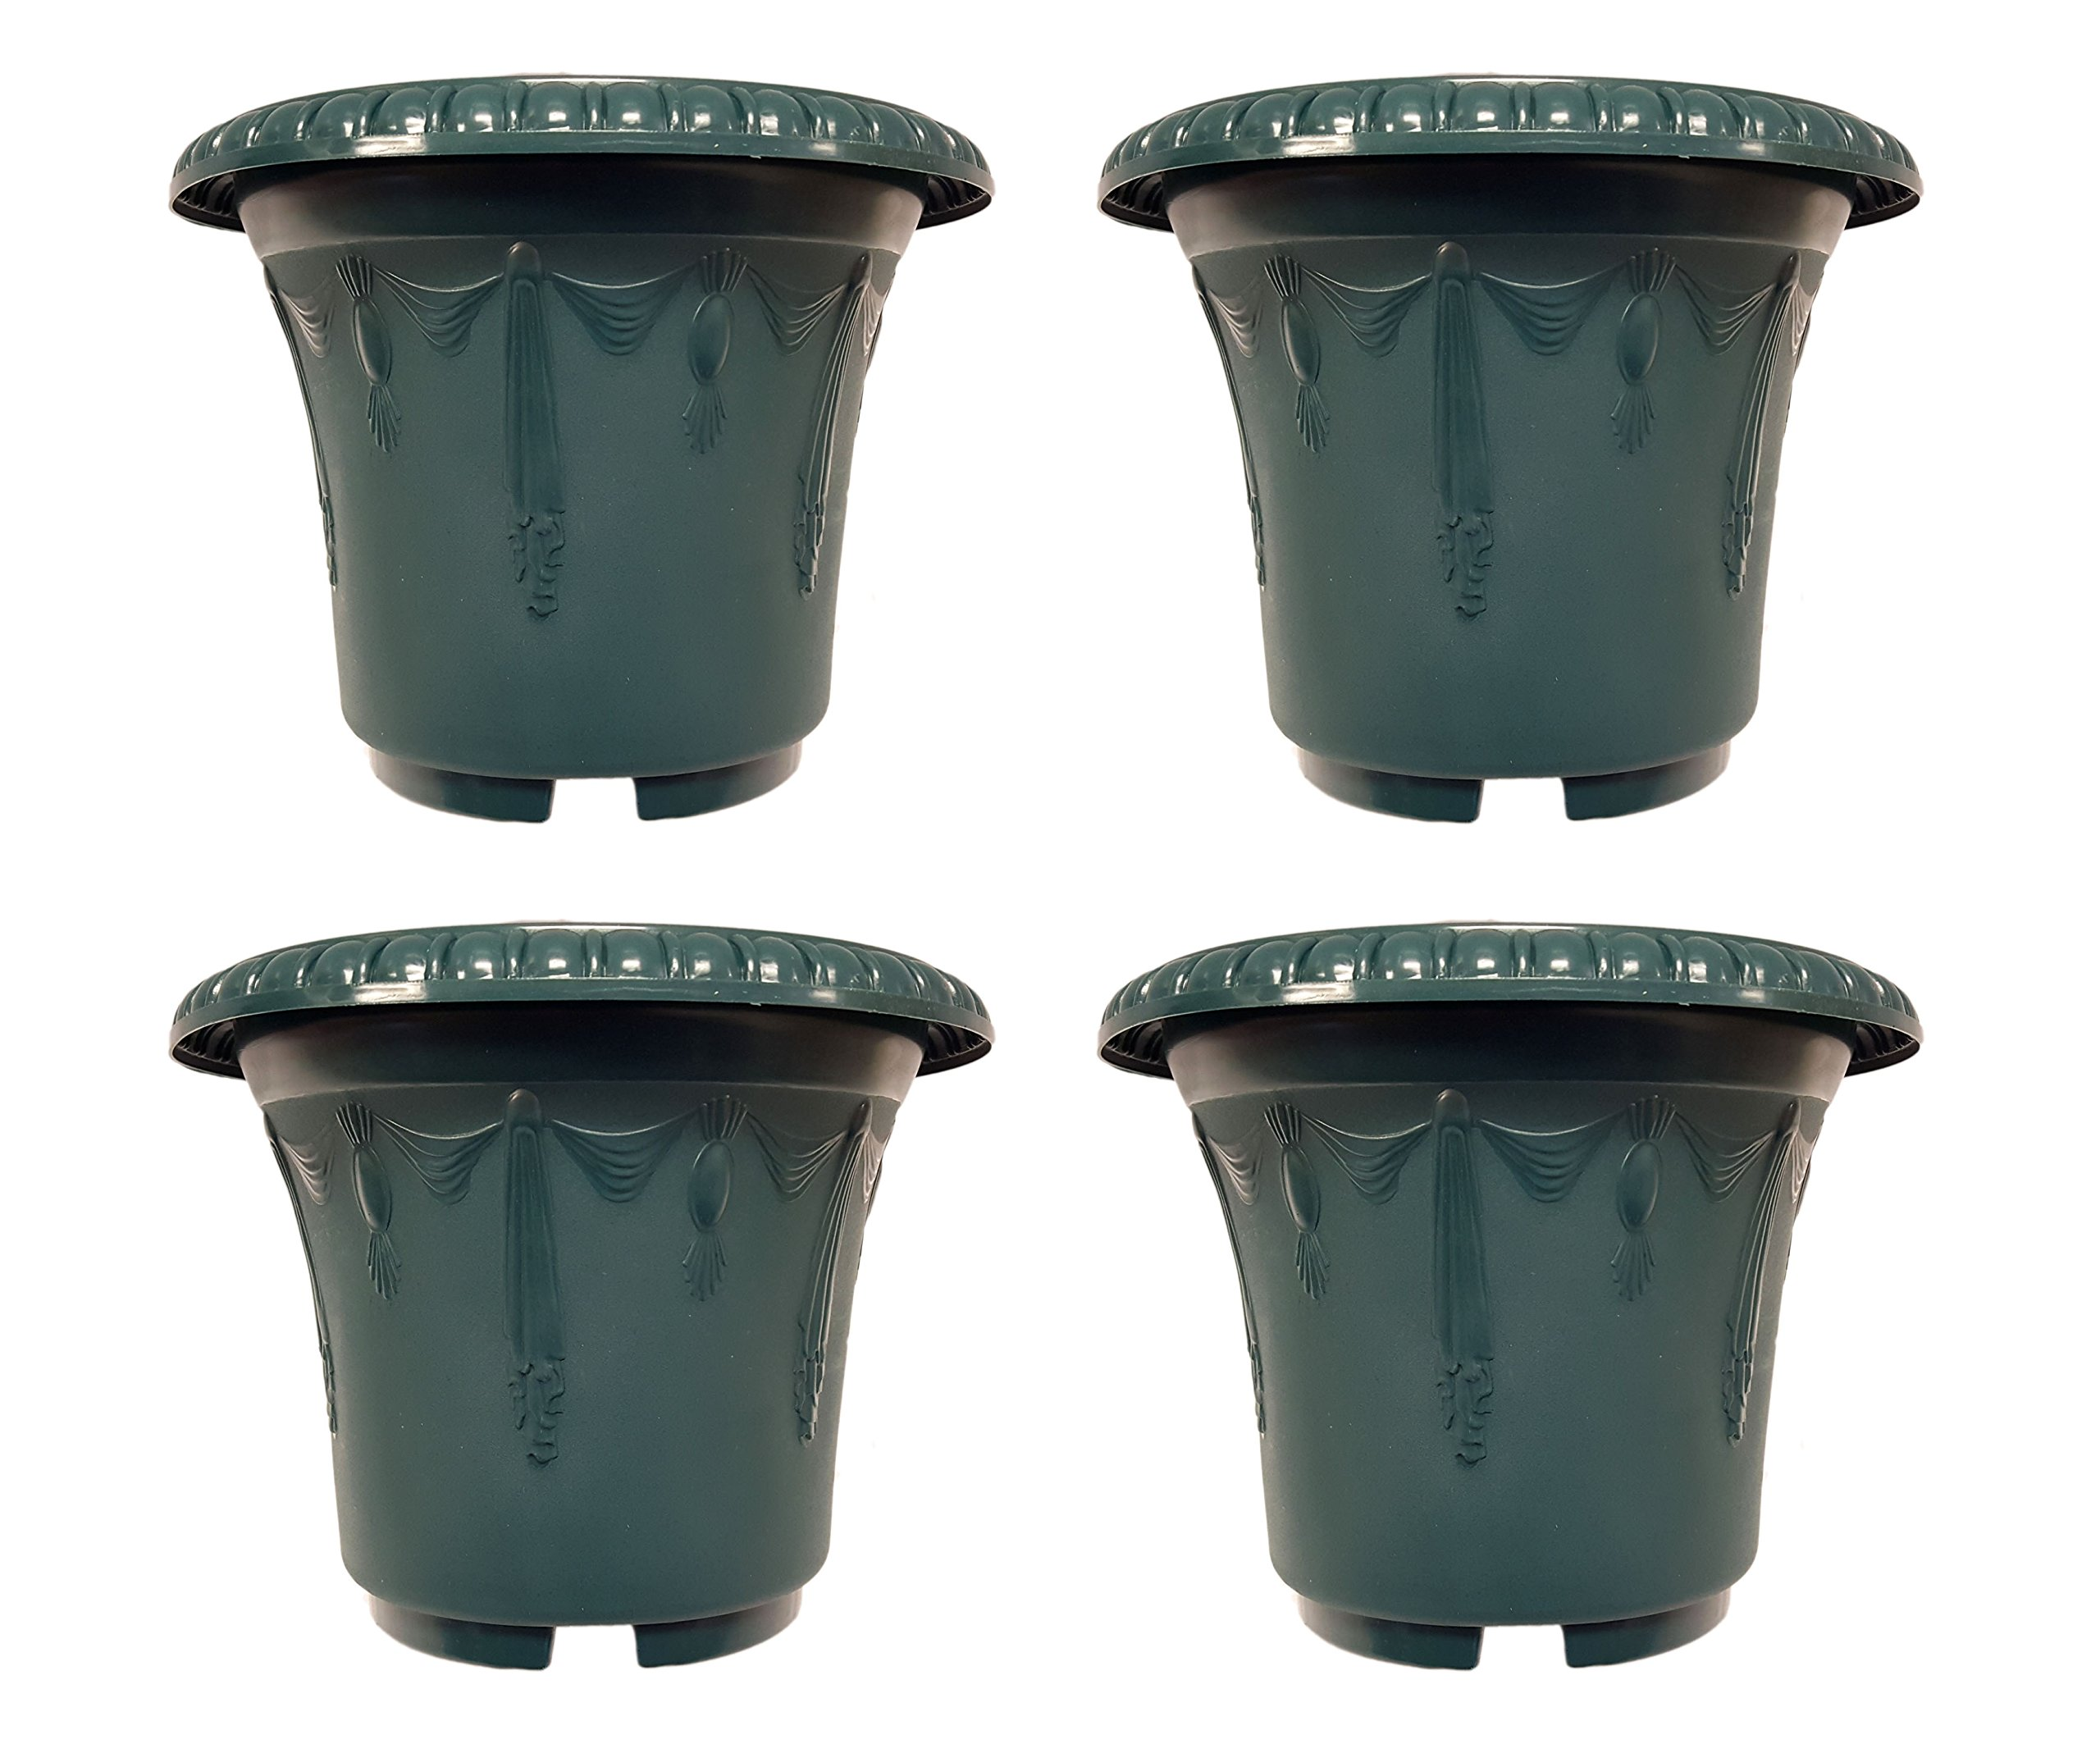 "Set of 4 Round Emboss Draping Decorative 9.5"" x 7.5"" Planters / Pots (Green)"